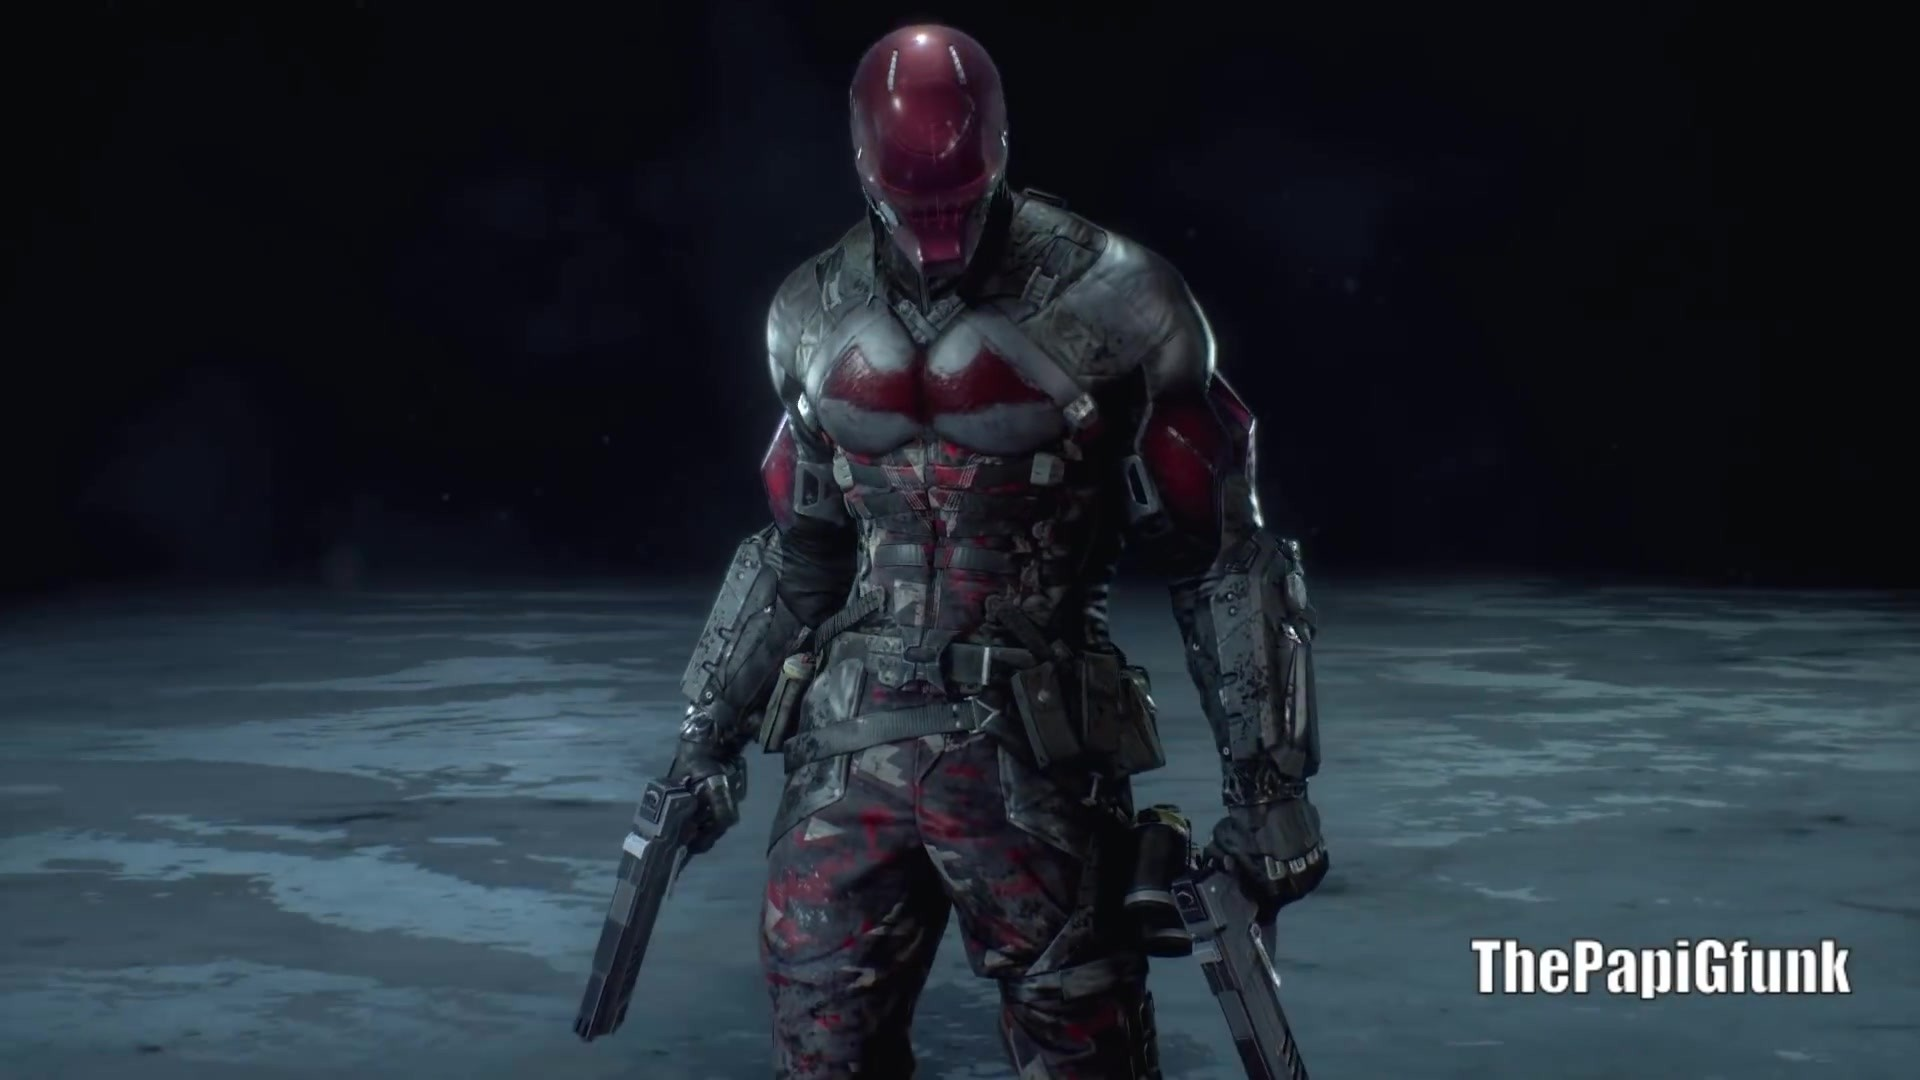 1920x1080 Batman Arkham Knight - All Skins, Batmobiles, Red Hood! 163.jpg